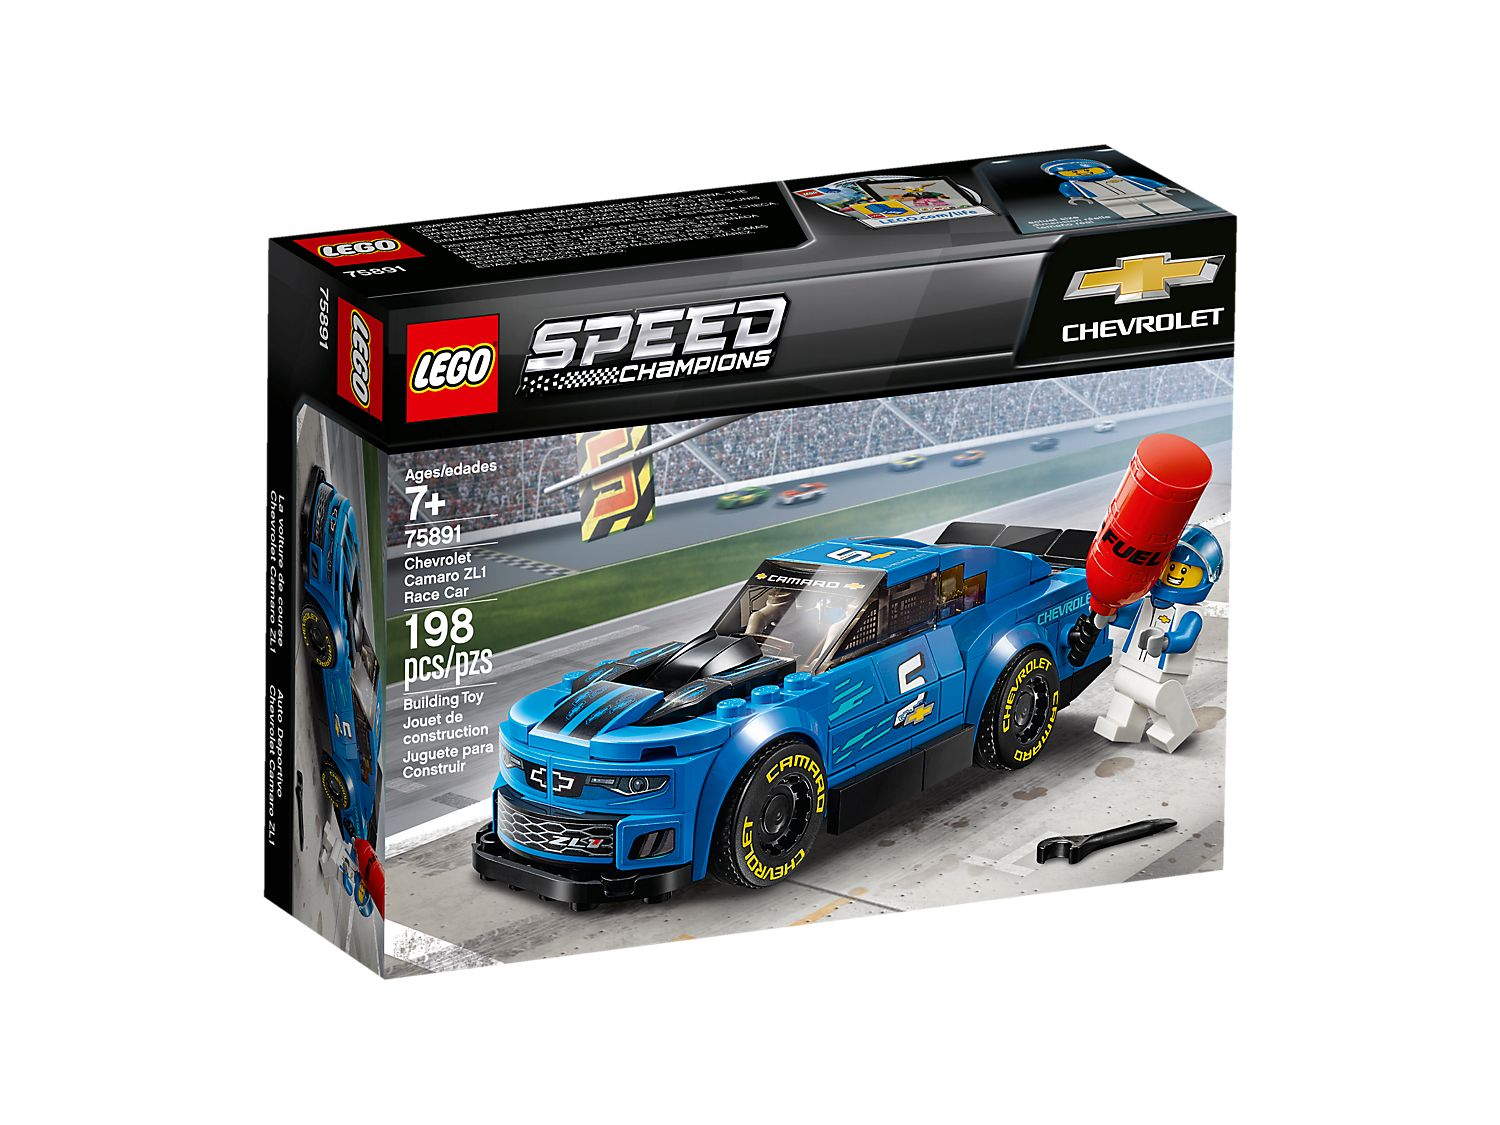 LEGO Chevrolet Camaro ZL1 Race Car